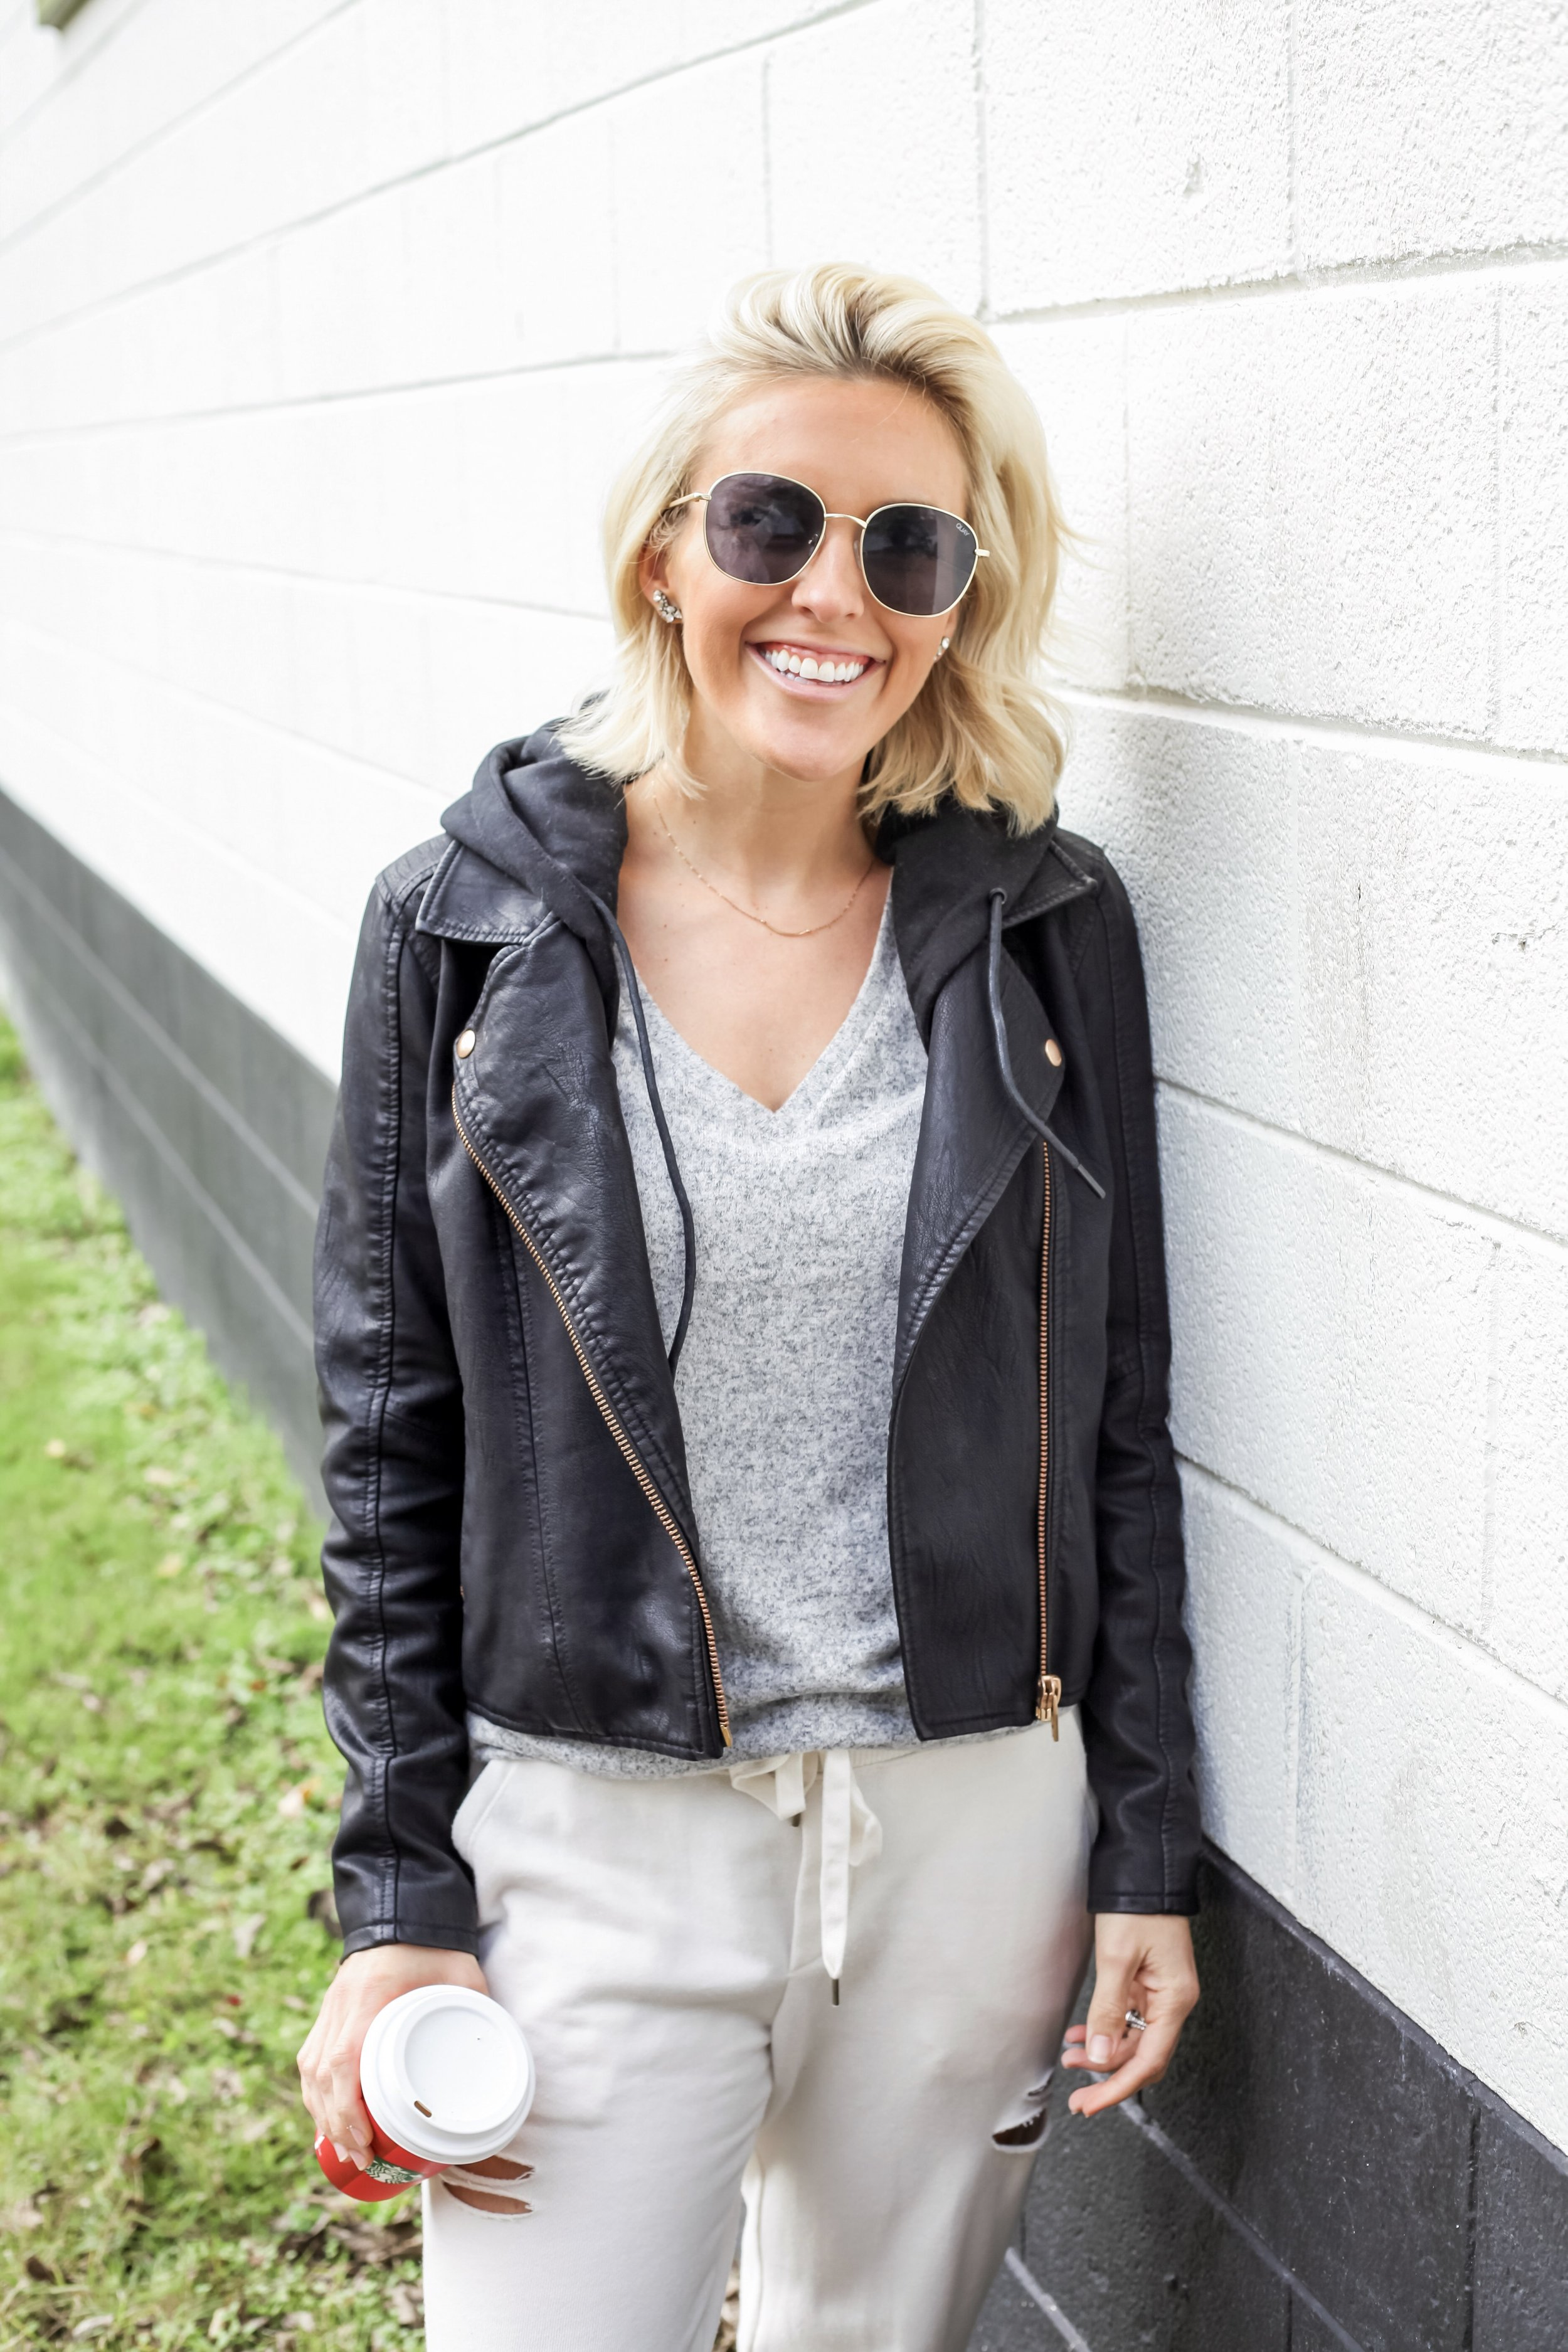 Outfit Details:  Faux Leather Jacket  |  Joggers  |  Sneakers  |  Sunglasses